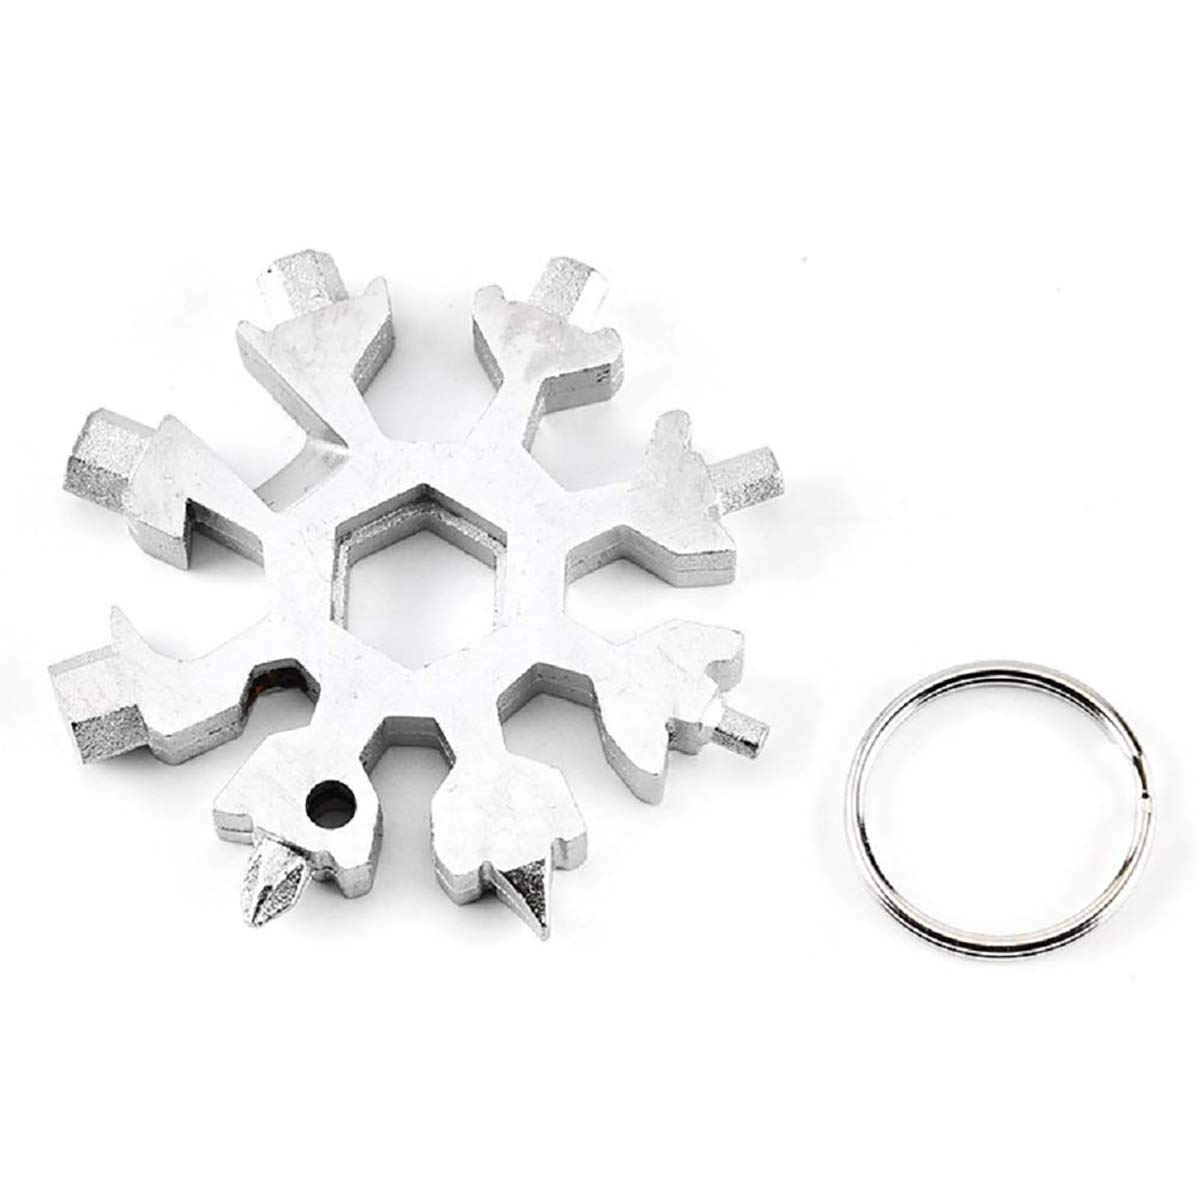 Stainless Snowflake Multi-Tool, Mallalah 18-in-1 Stainless Steel Multifunction Useful Wrench Outdoor Travel Camping Portable Keychain Screwdriver Bottle Opener Incredible Tool